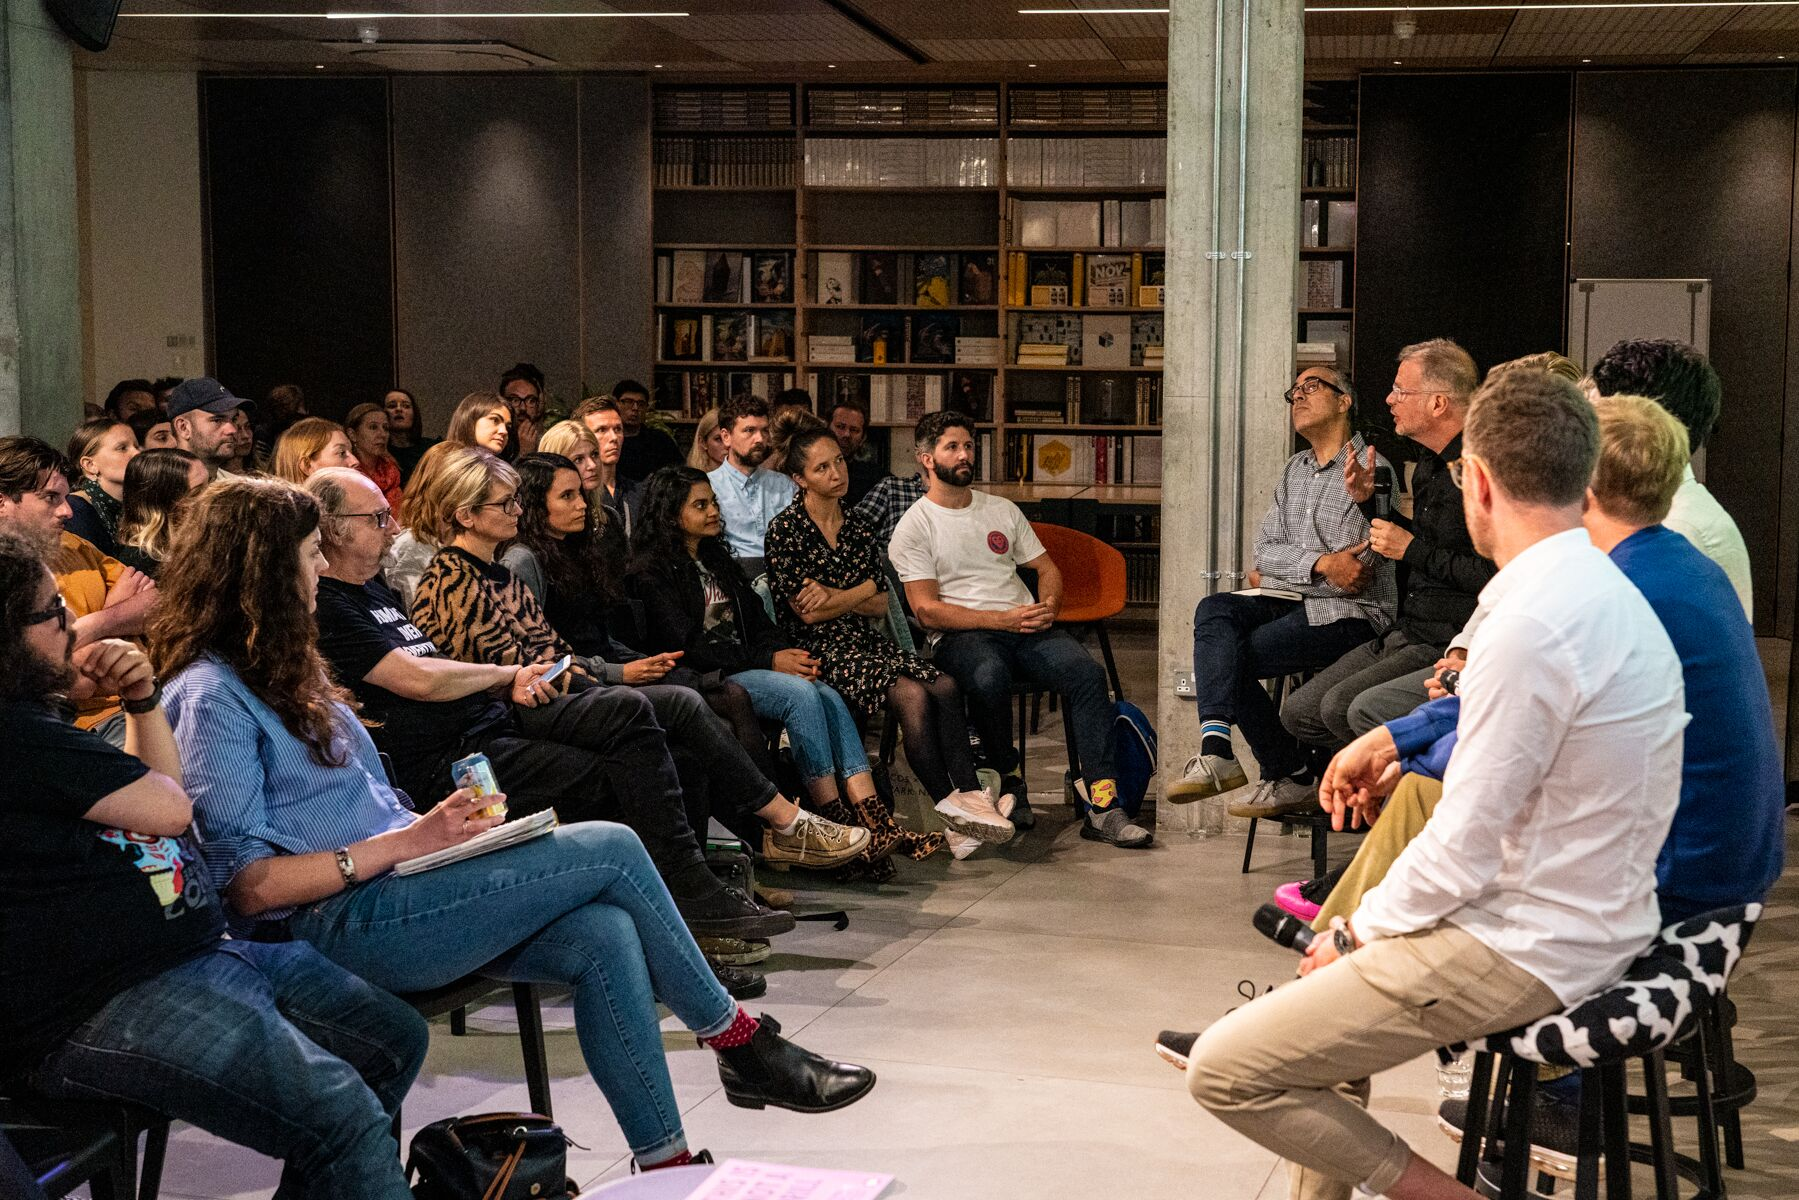 'Agencies Need to Rediscover Their Agency' - D&AD Hosts Debate on Industry's Role in Climate Crisis